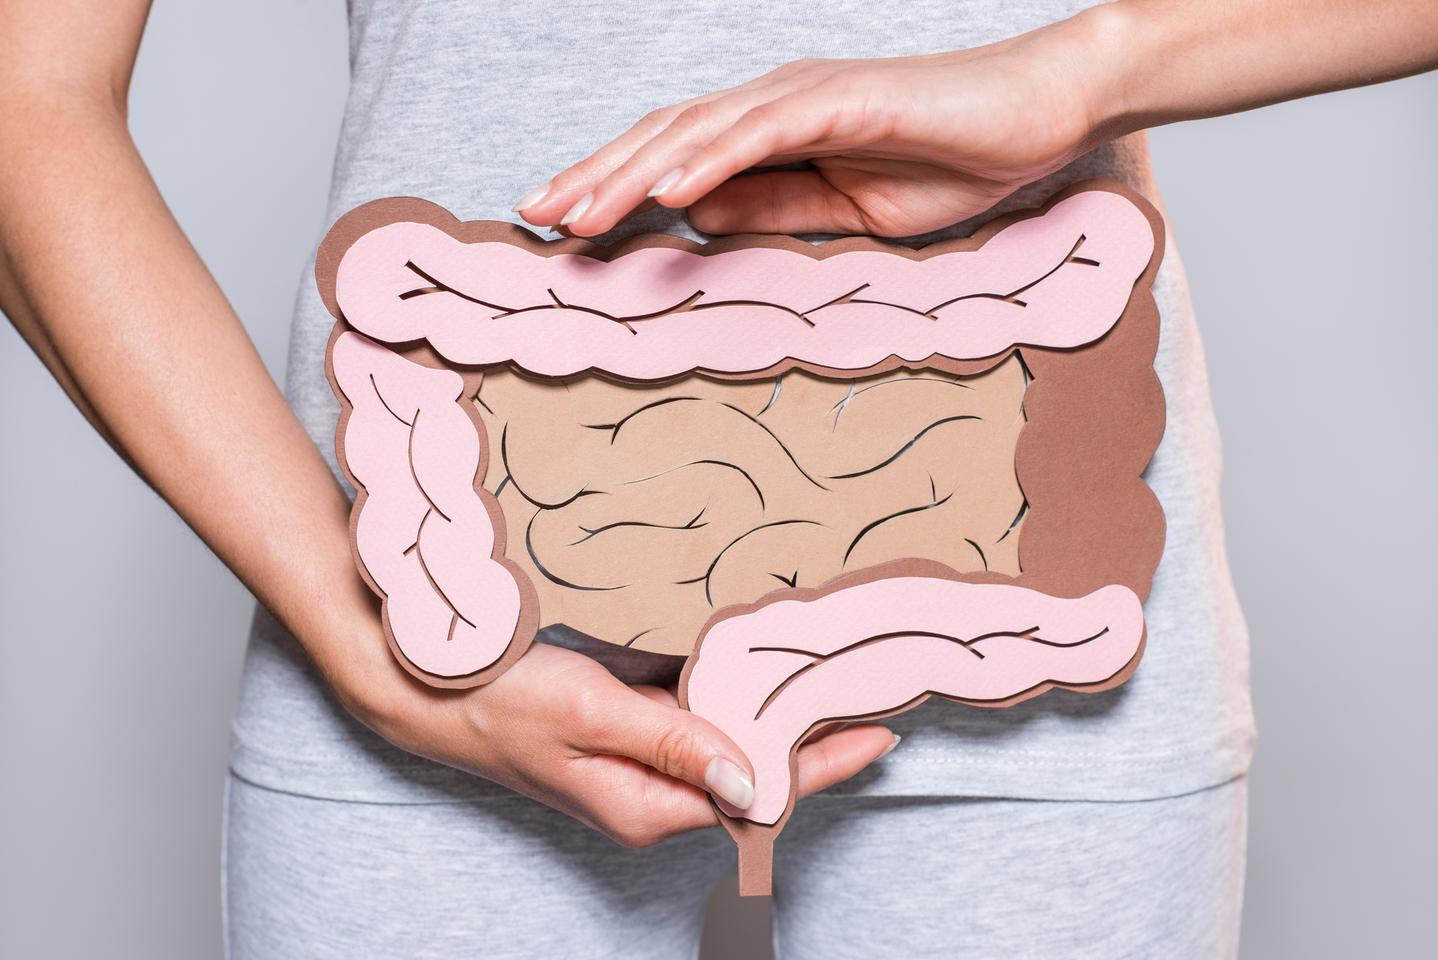 Two gut bacteria metabolites, known as secondary bile acids, could help reduce intestinal inflammation